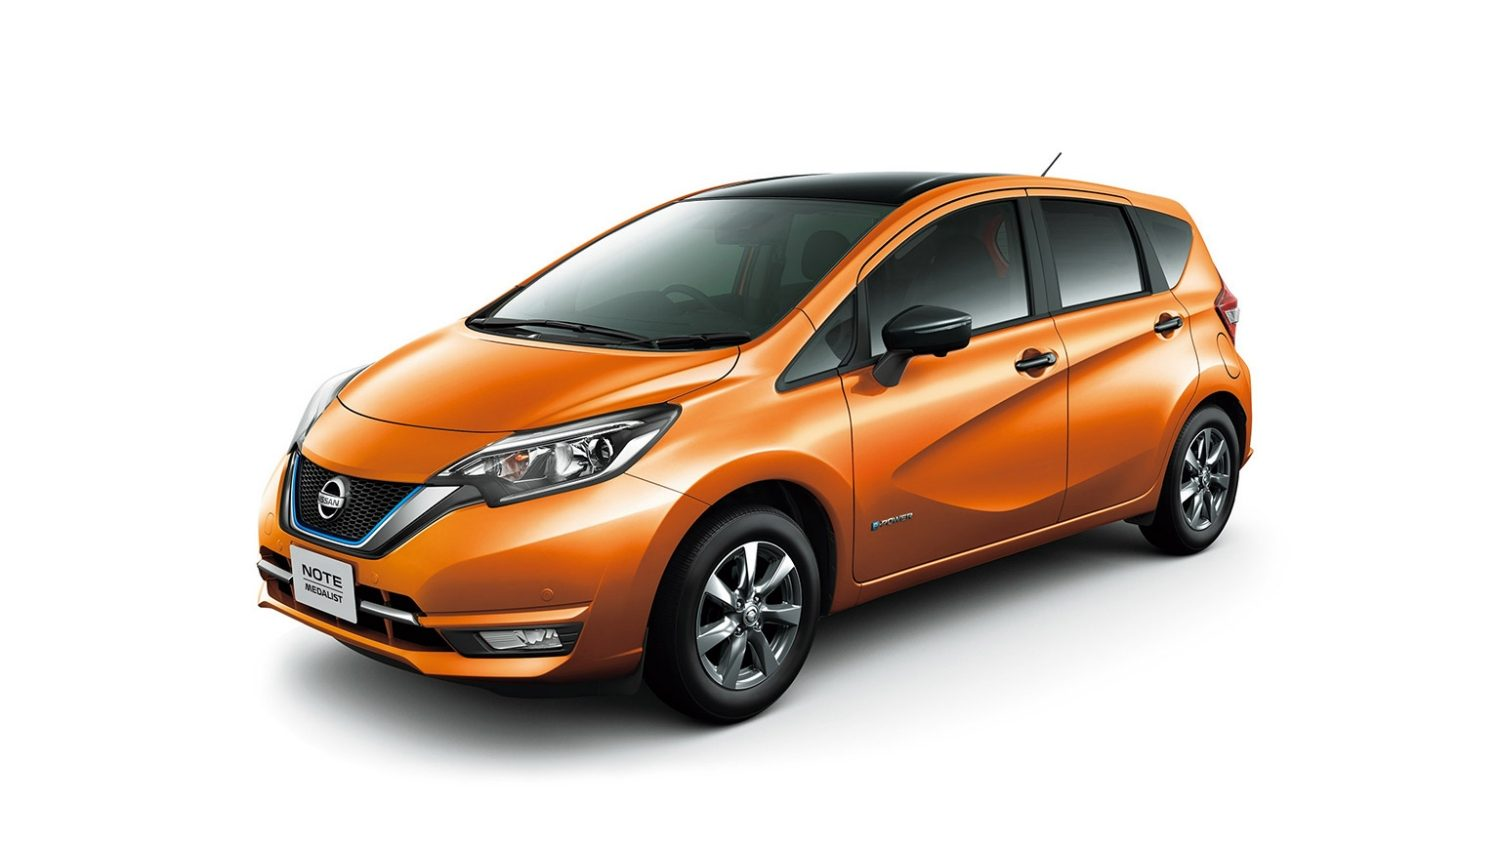 Nissan's e-POWER technology wins environmental award